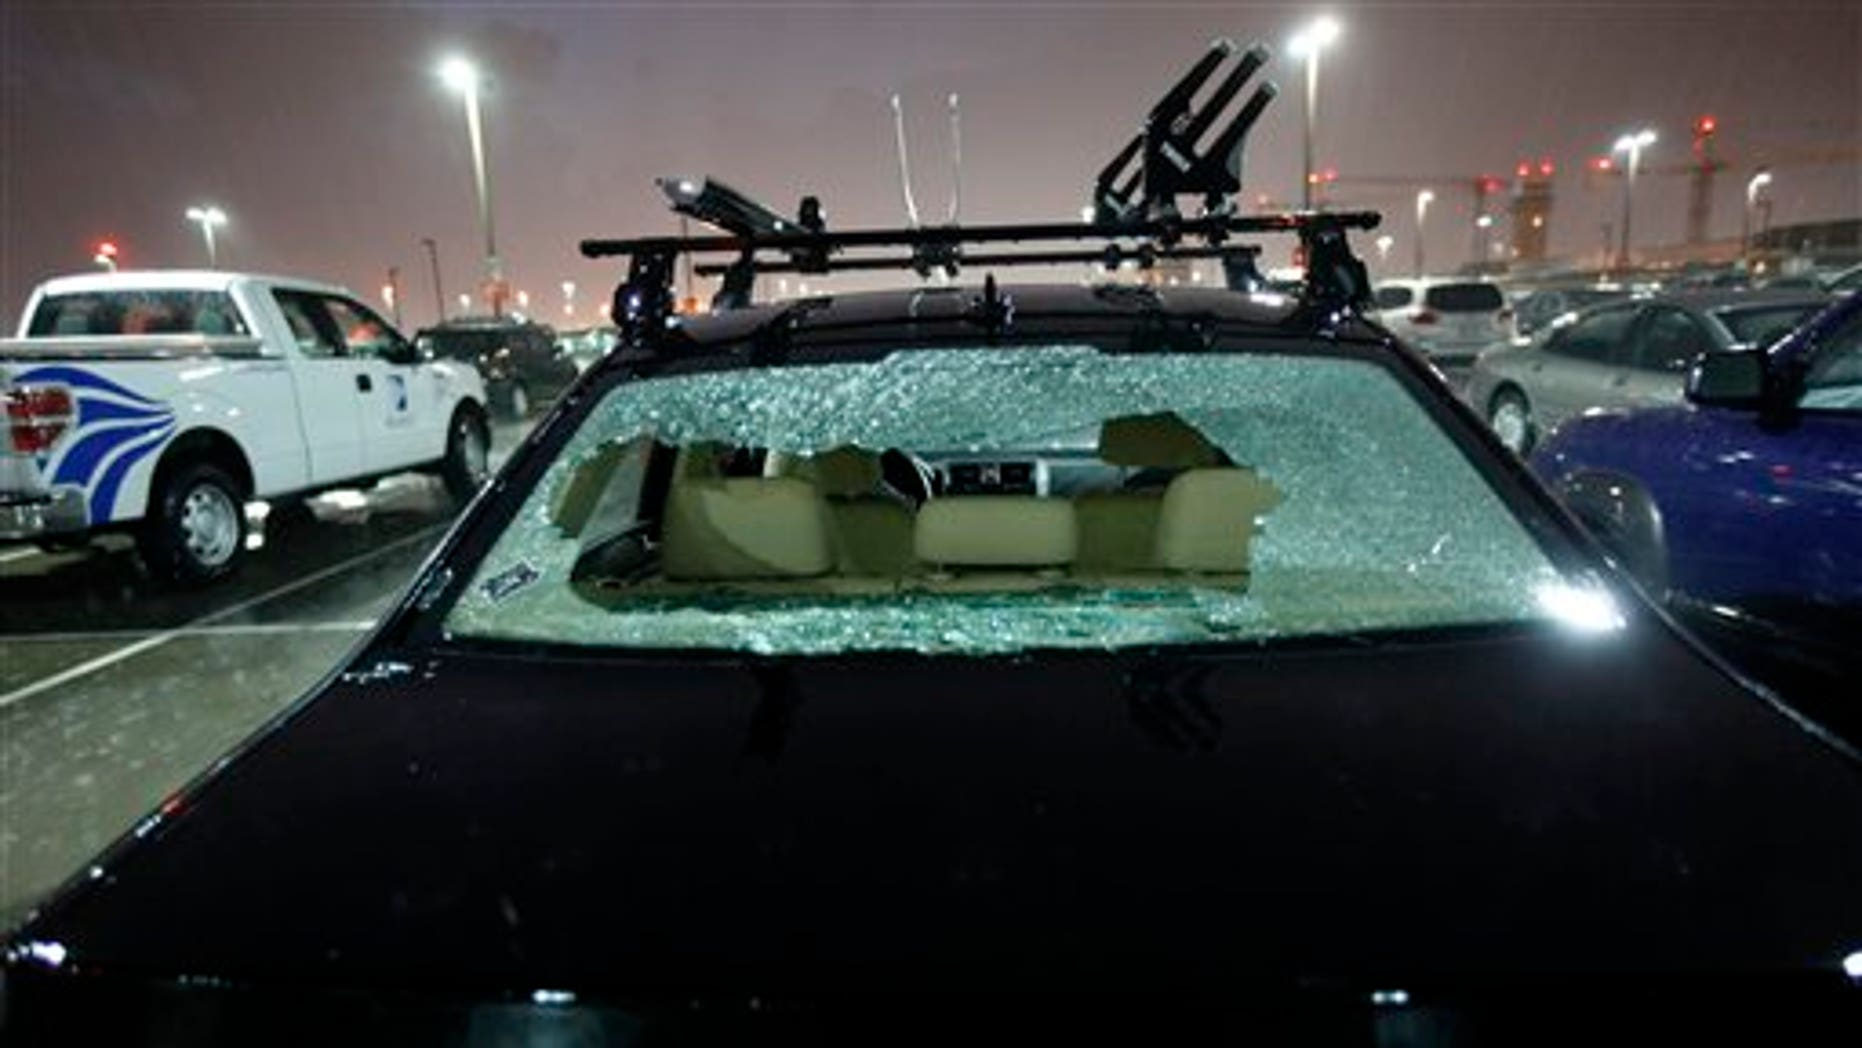 May 24: The rear windshield of a parked car at Love Field Airport in Dallas was shattered by hail during severe weather that also produced a tornado nearby.